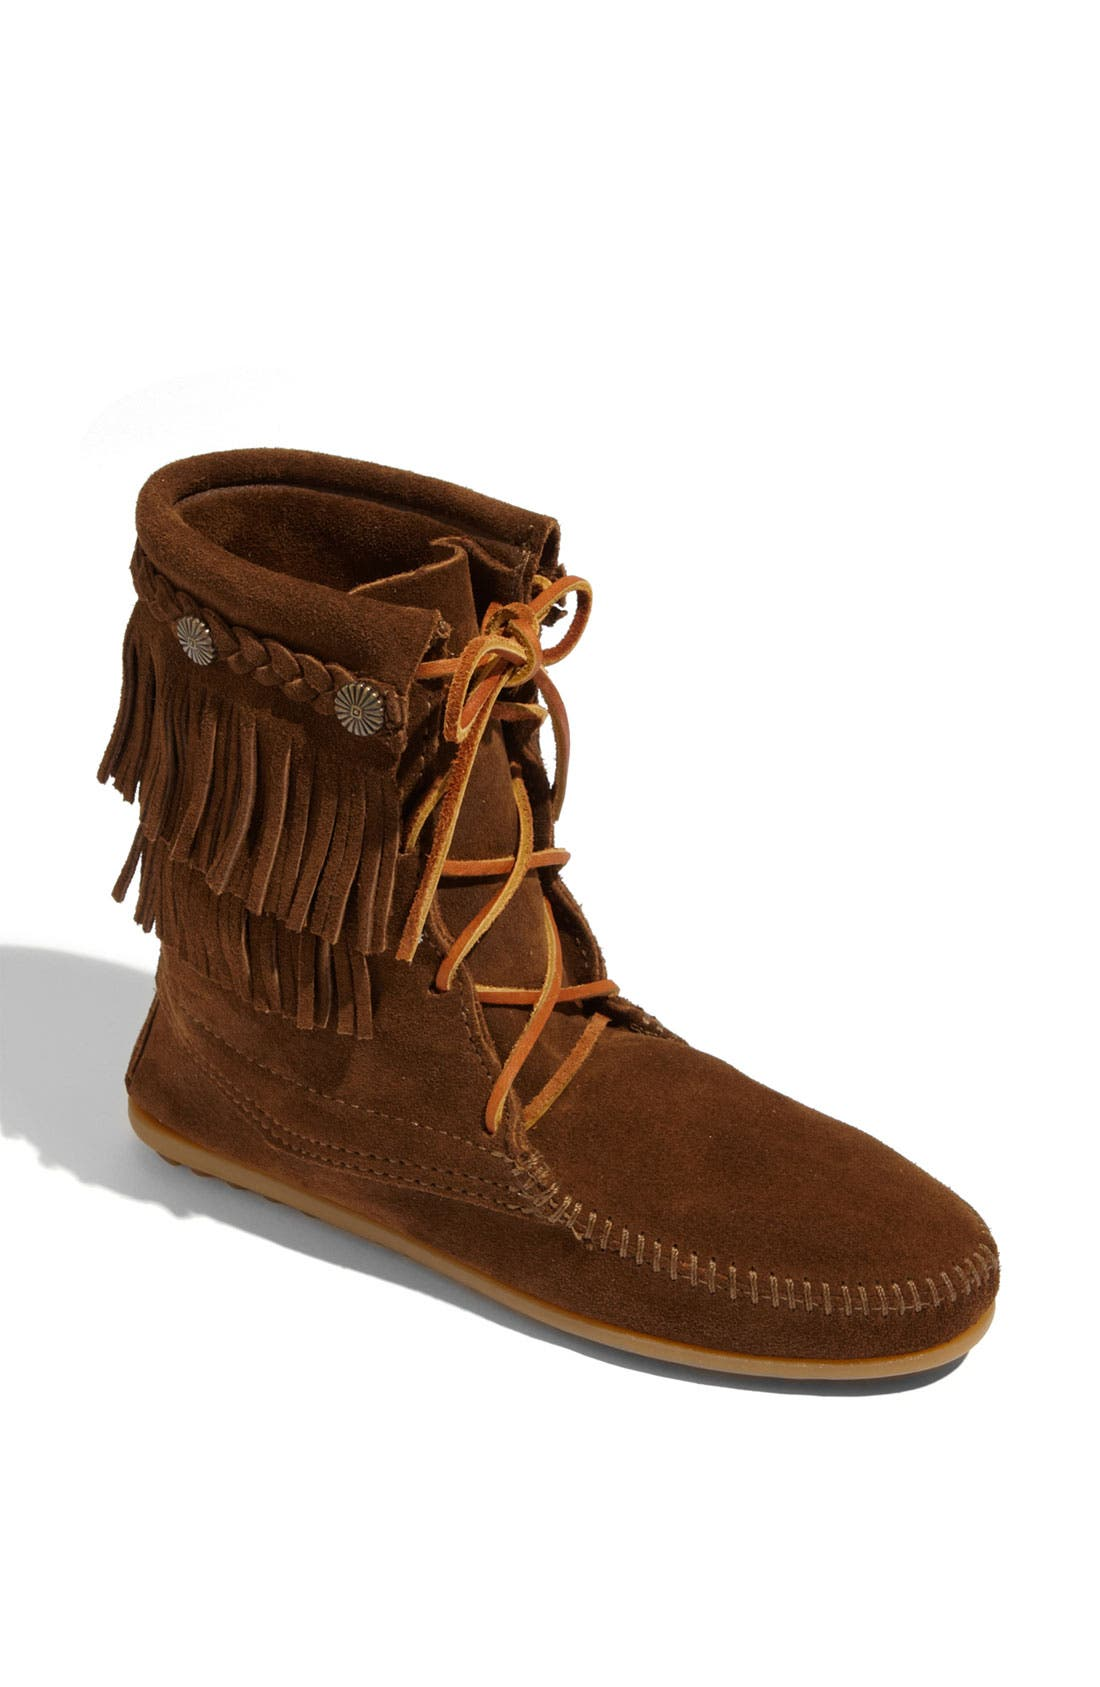 'Tramper' Double Fringe Moccasin Boot,                             Main thumbnail 1, color,                             219